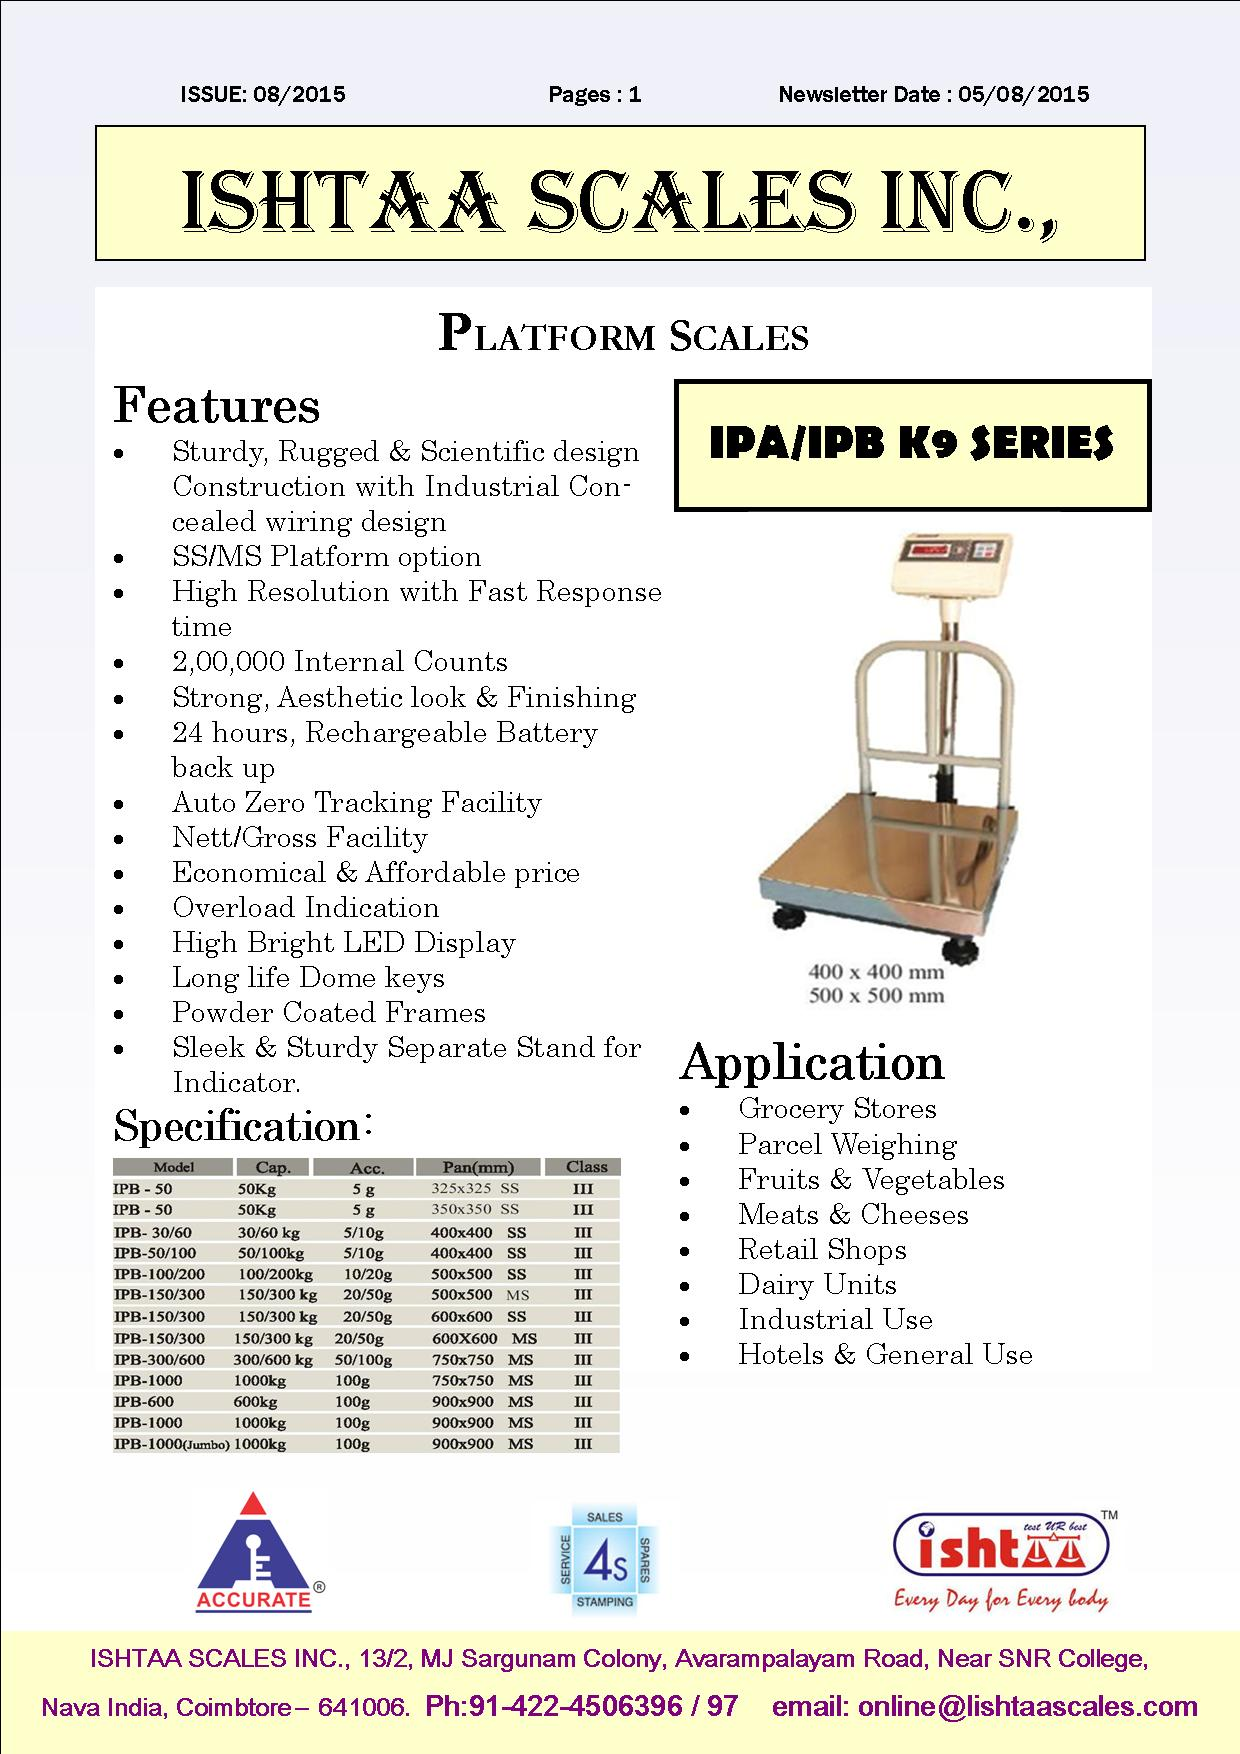 Best Industrial Weighing Scale Weighing Scales for Heavy Duty Applications Electronic Weighing Scales at Best Price Weighing Scales for Markets Weighing Scales for Parcel Services Logistics Weighing Scales Wooden Box Weighing Scales Wholesale Weighing Scale  Buy now at Accurate Ishtaa Coimbatore